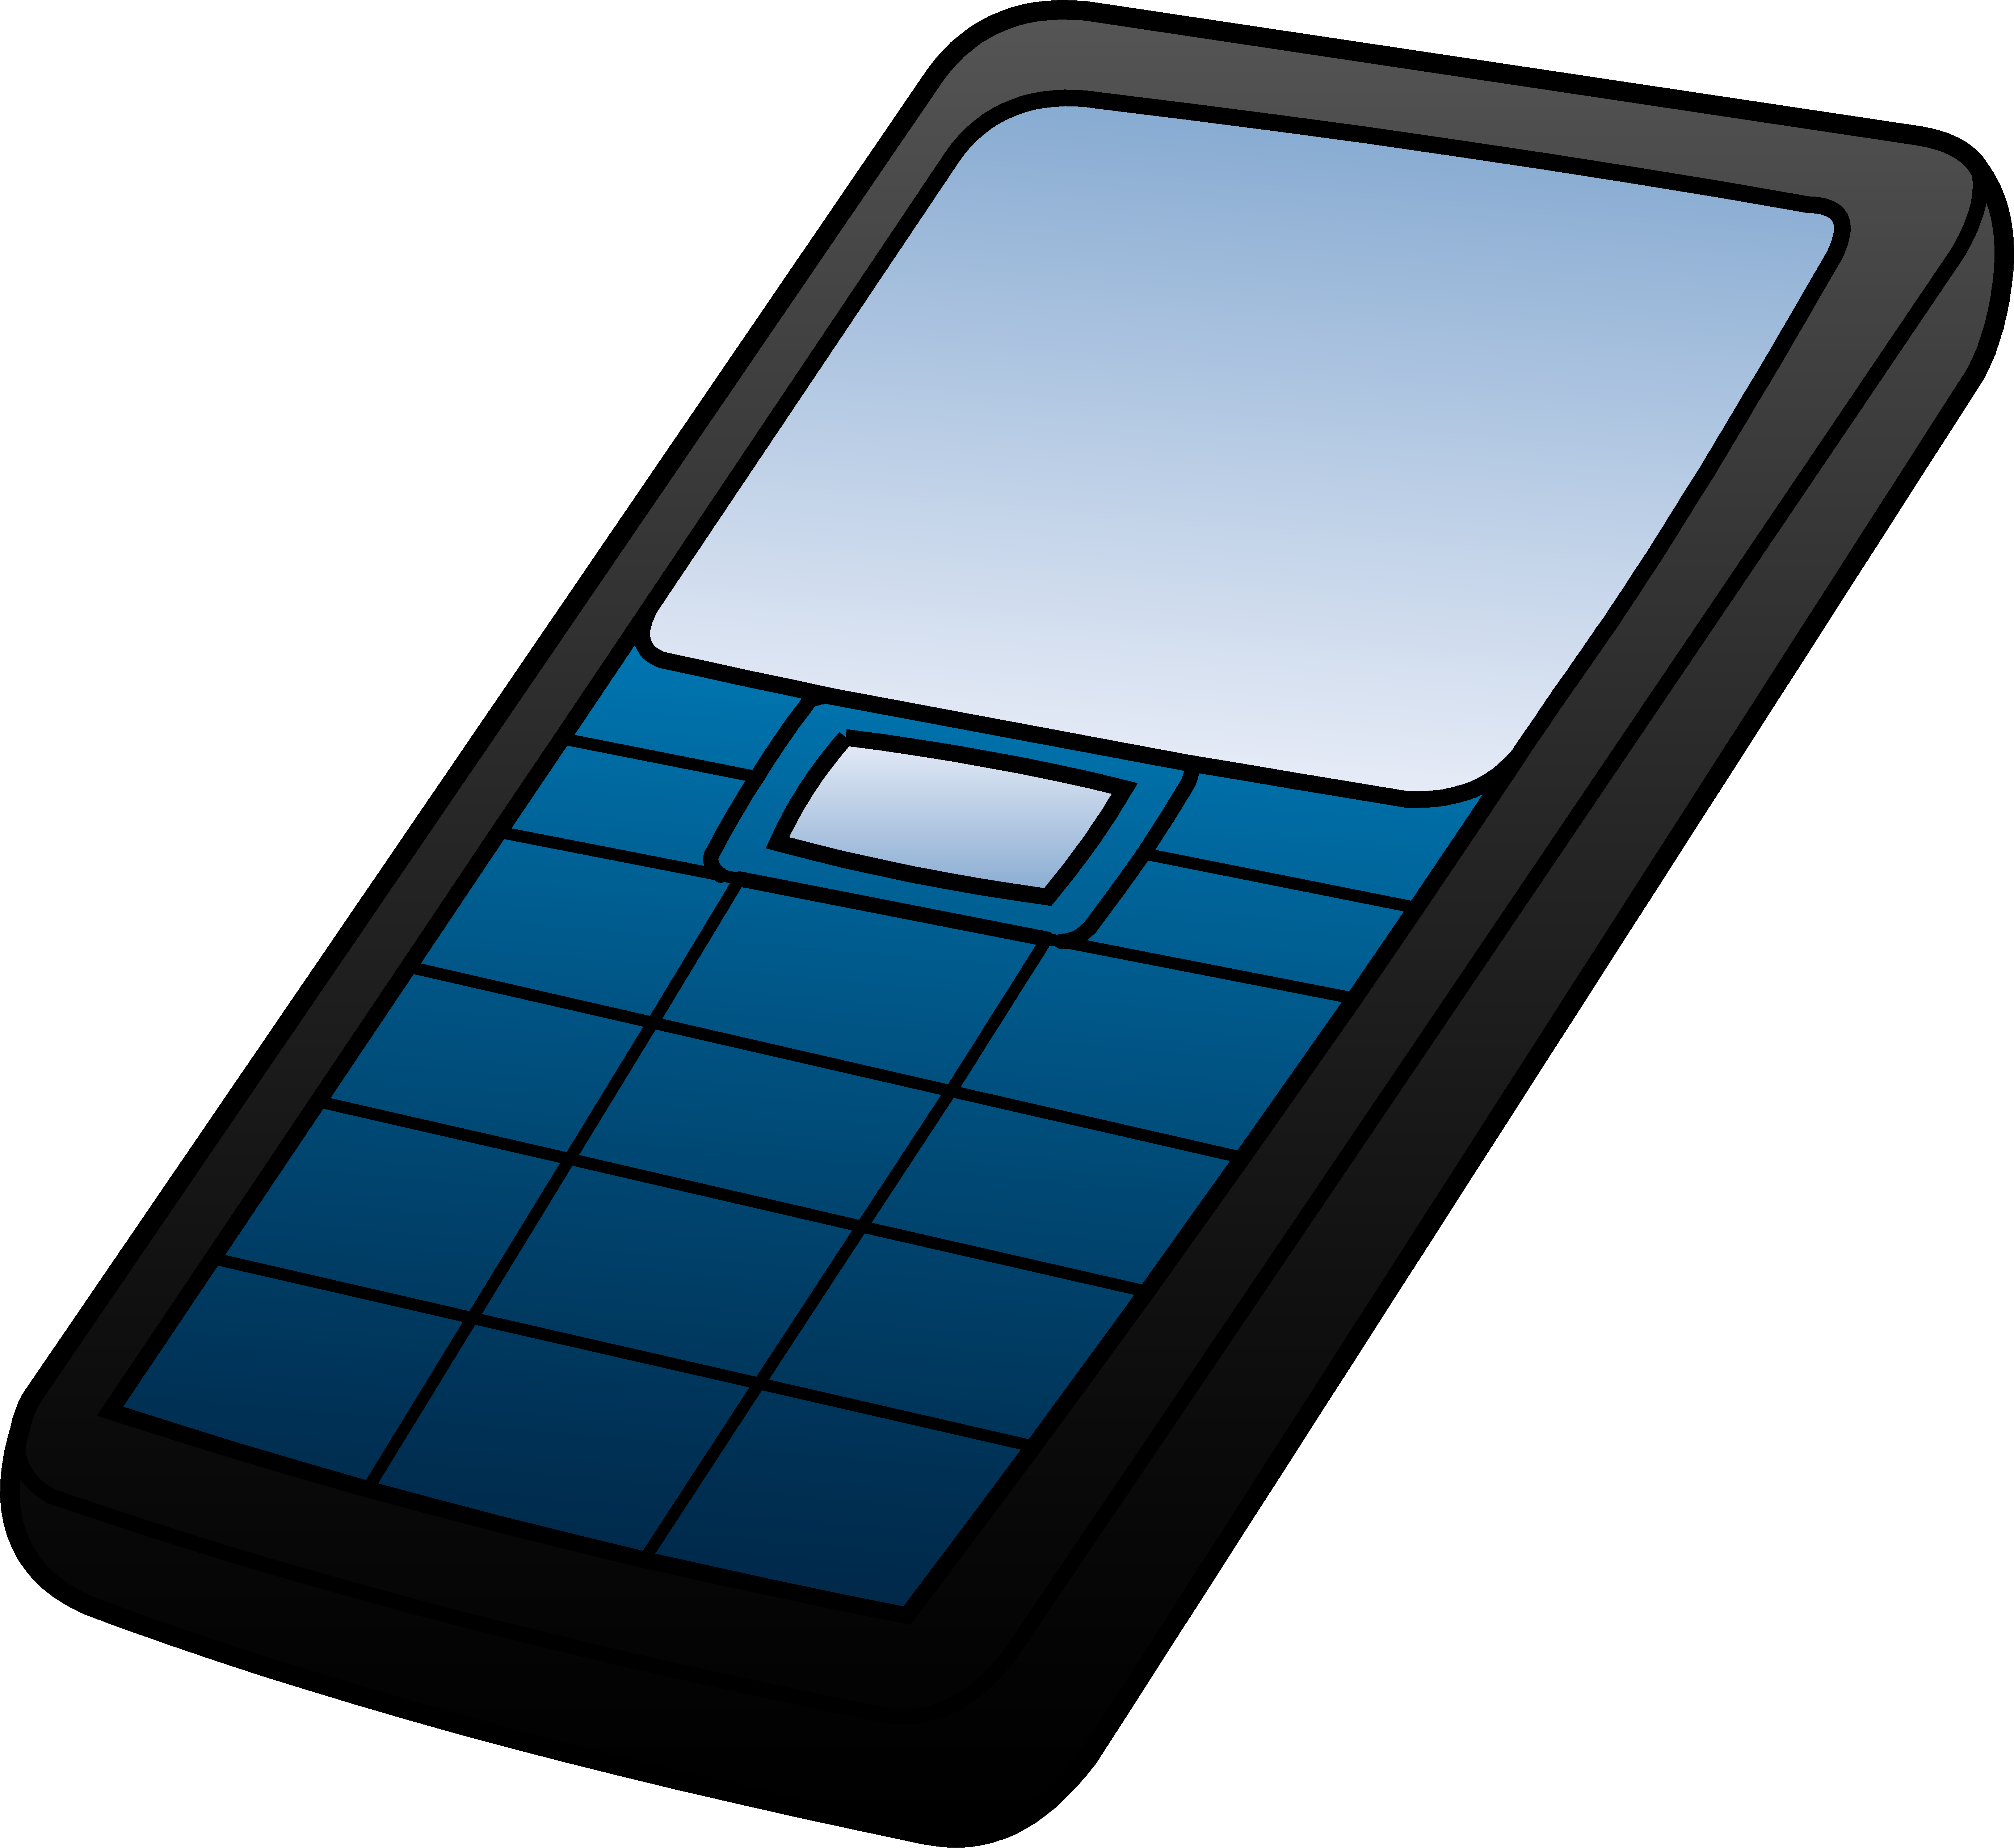 Cell Phone Clipart 3-Cell phone clipart 3-6